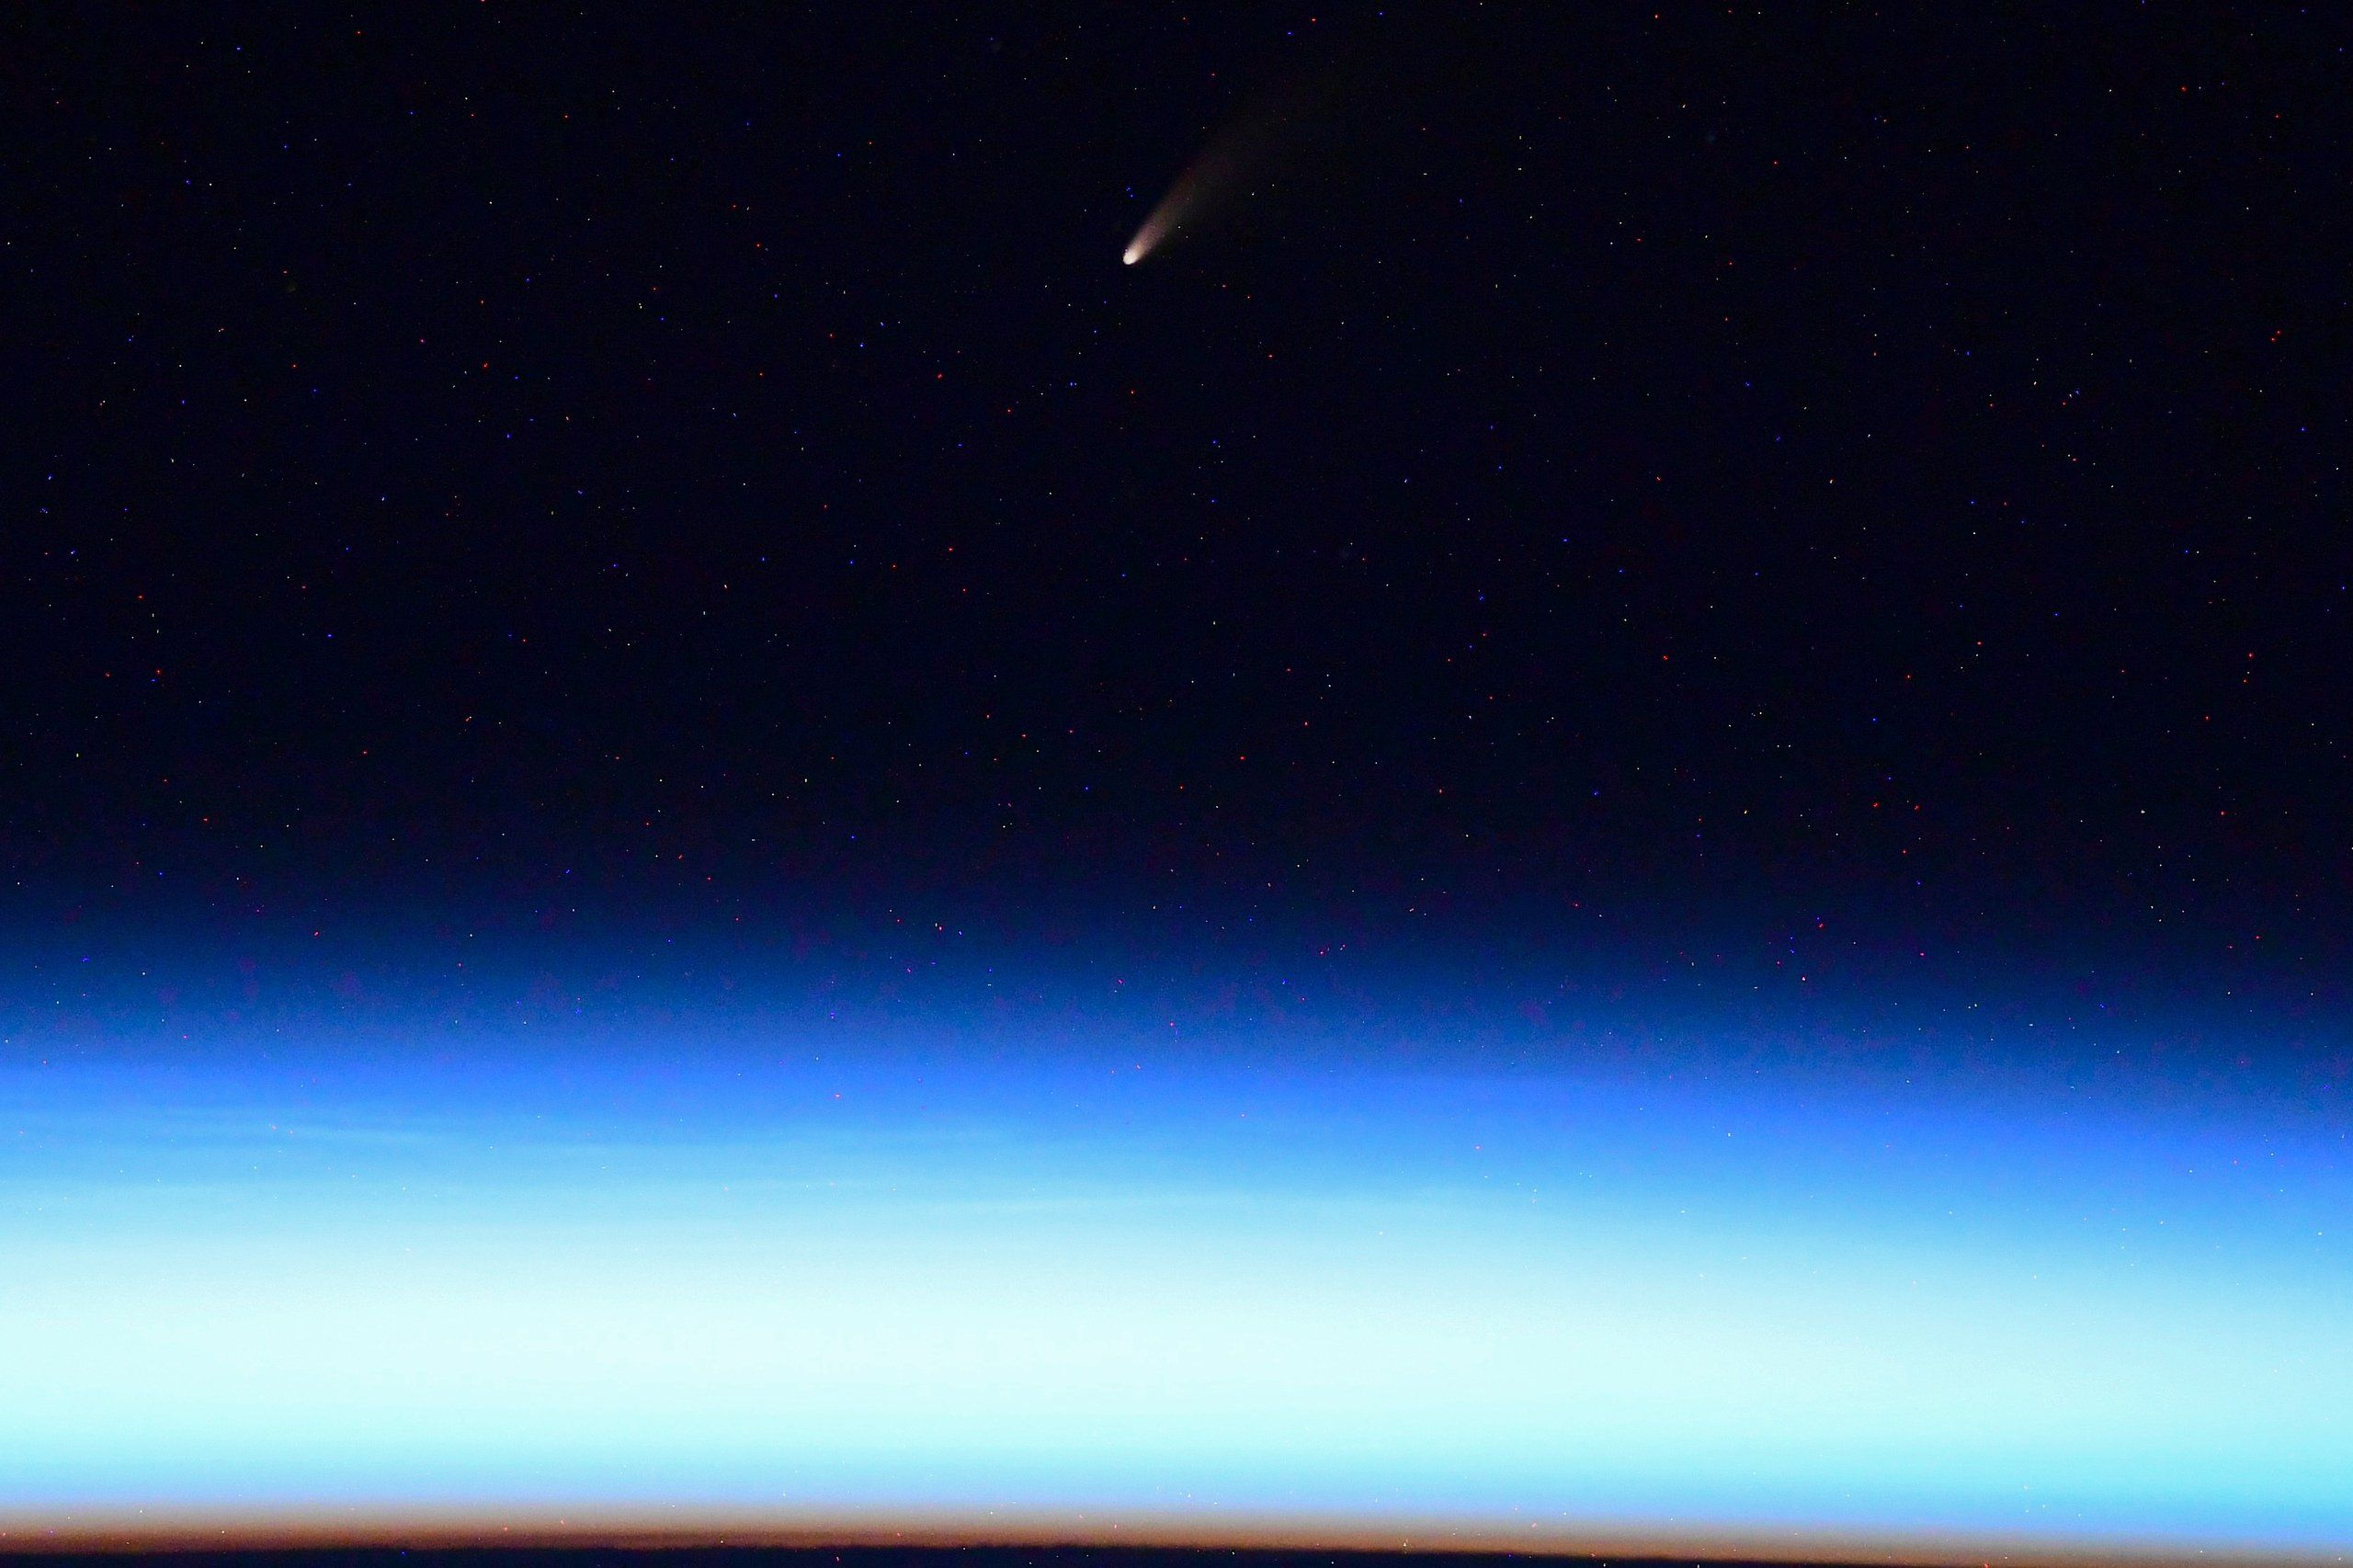 A Naked-Eye Comet Is Soaring Through the Sky—Here's How to See It